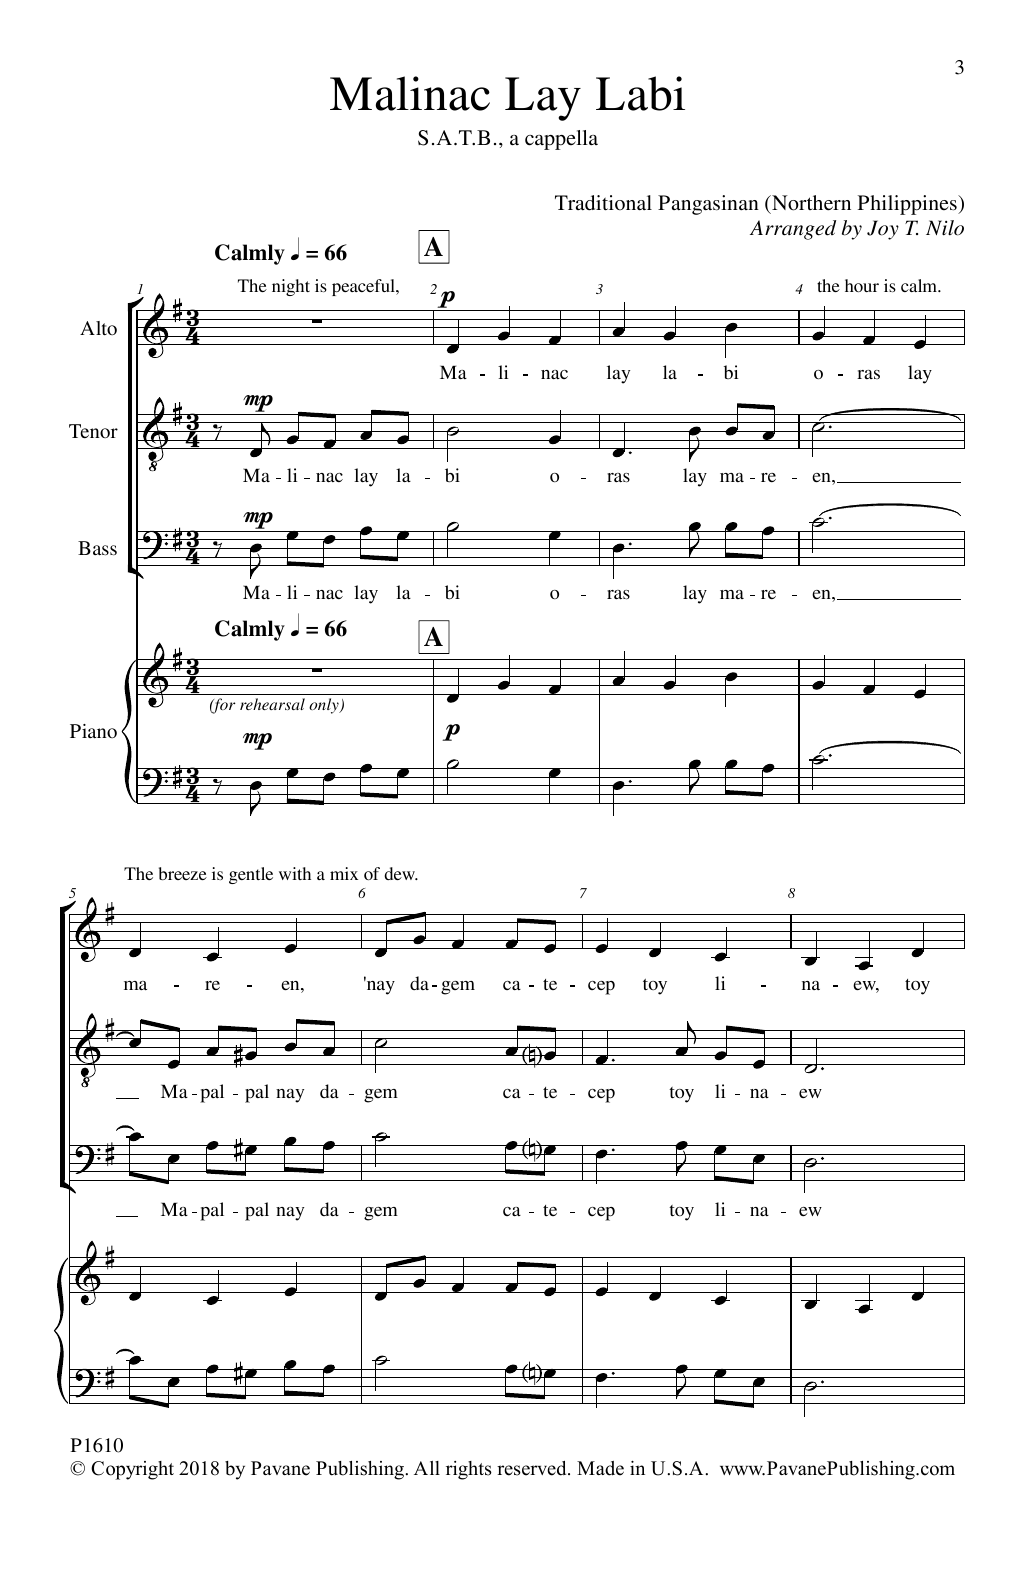 Joy T. Nilo Malinac Lay Labi sheet music notes and chords. Download Printable PDF.